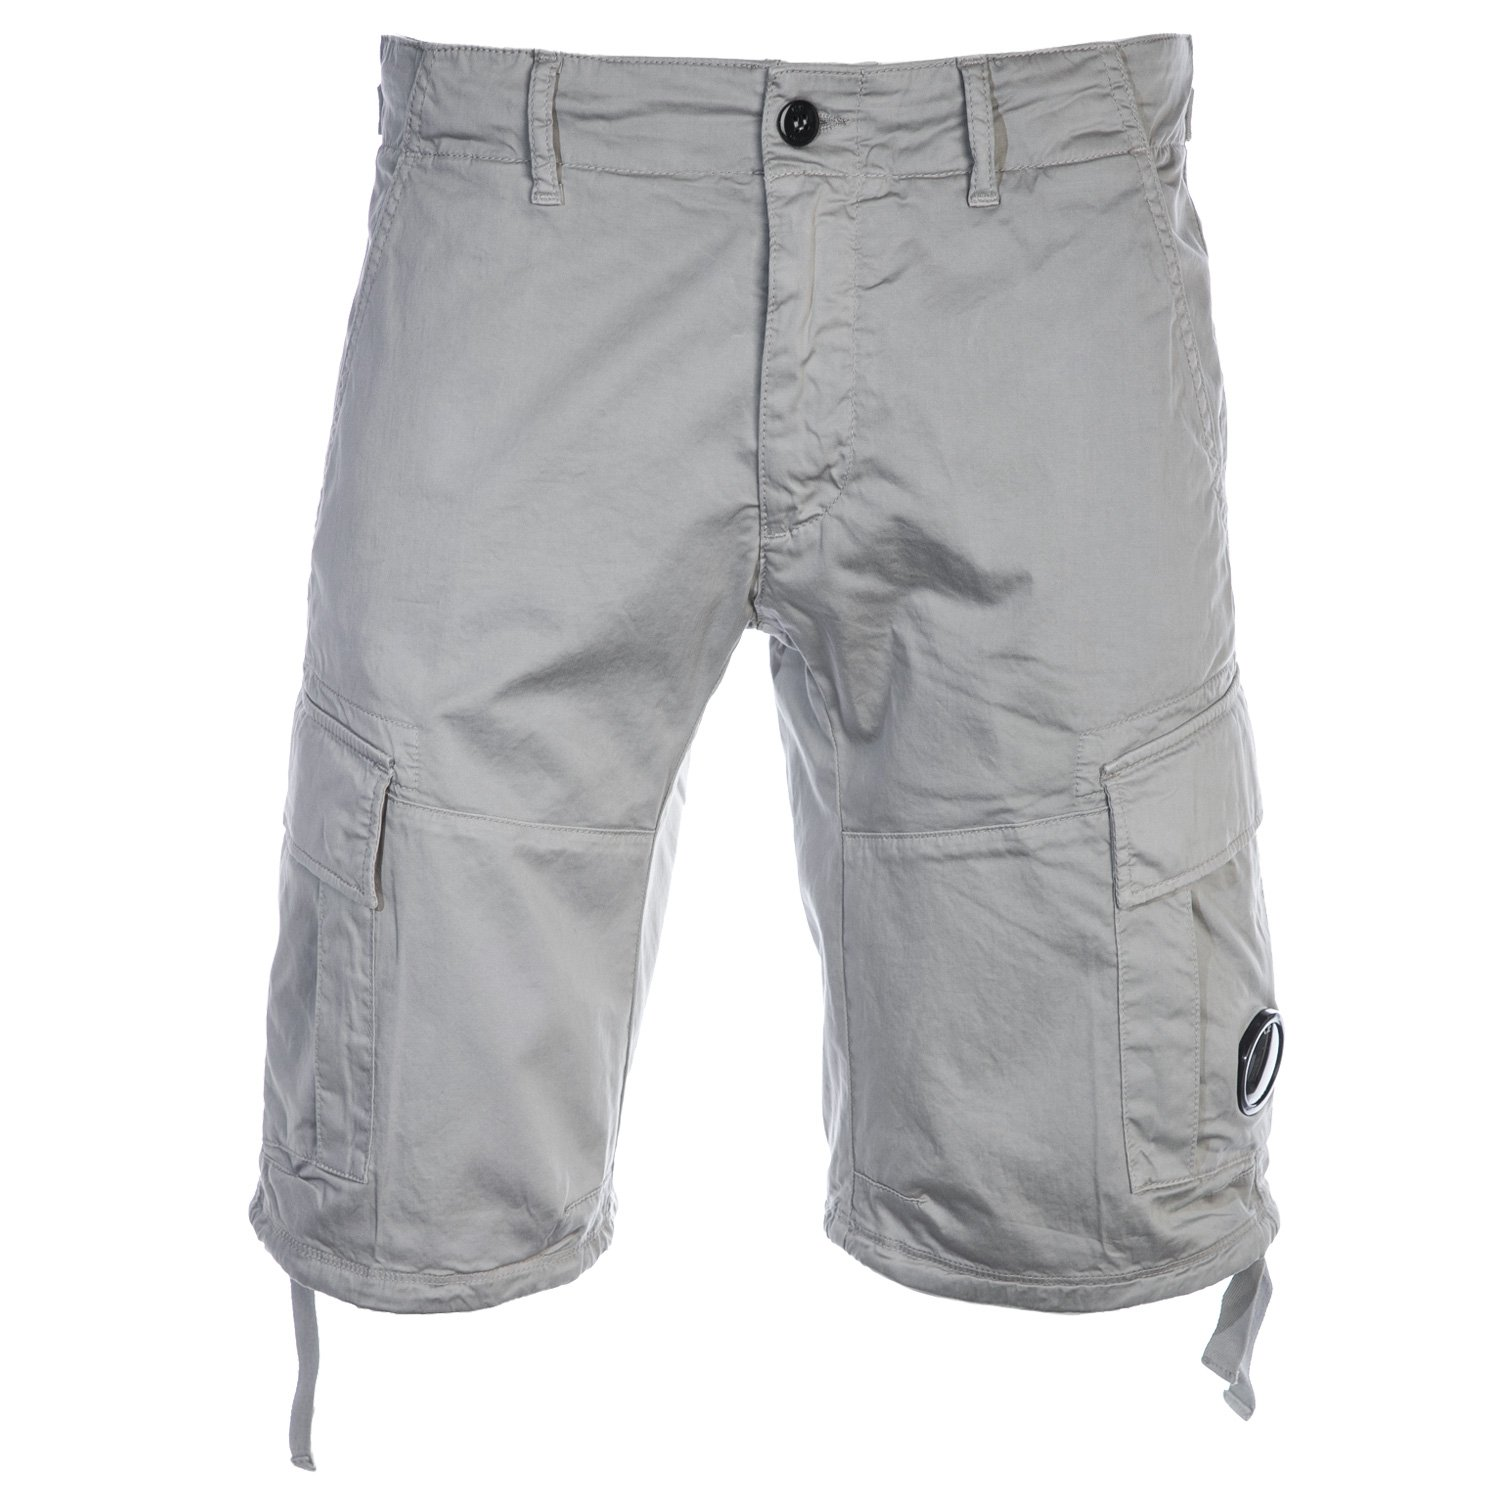 42b2b98910afc CP Company Cargo Lens Short in Stone at Amazon Men's Clothing store: